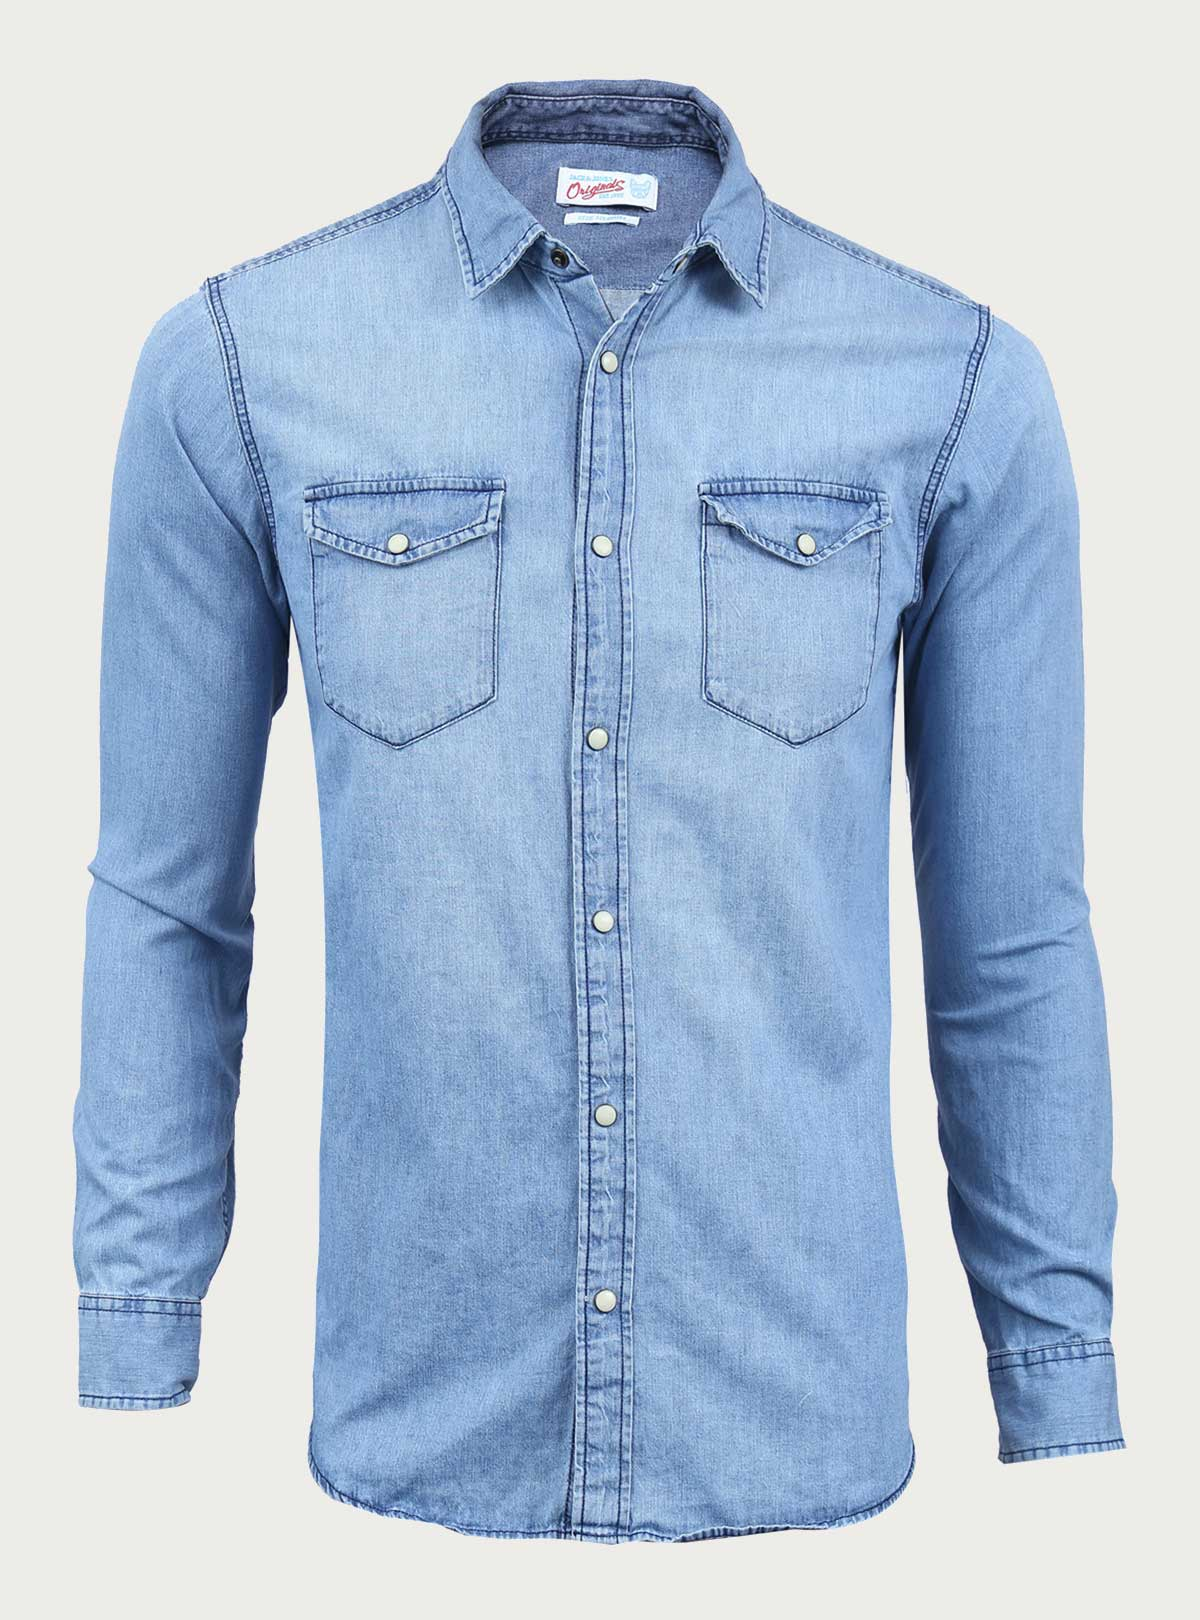 Stylish Casual Shirt By JACK & JONES